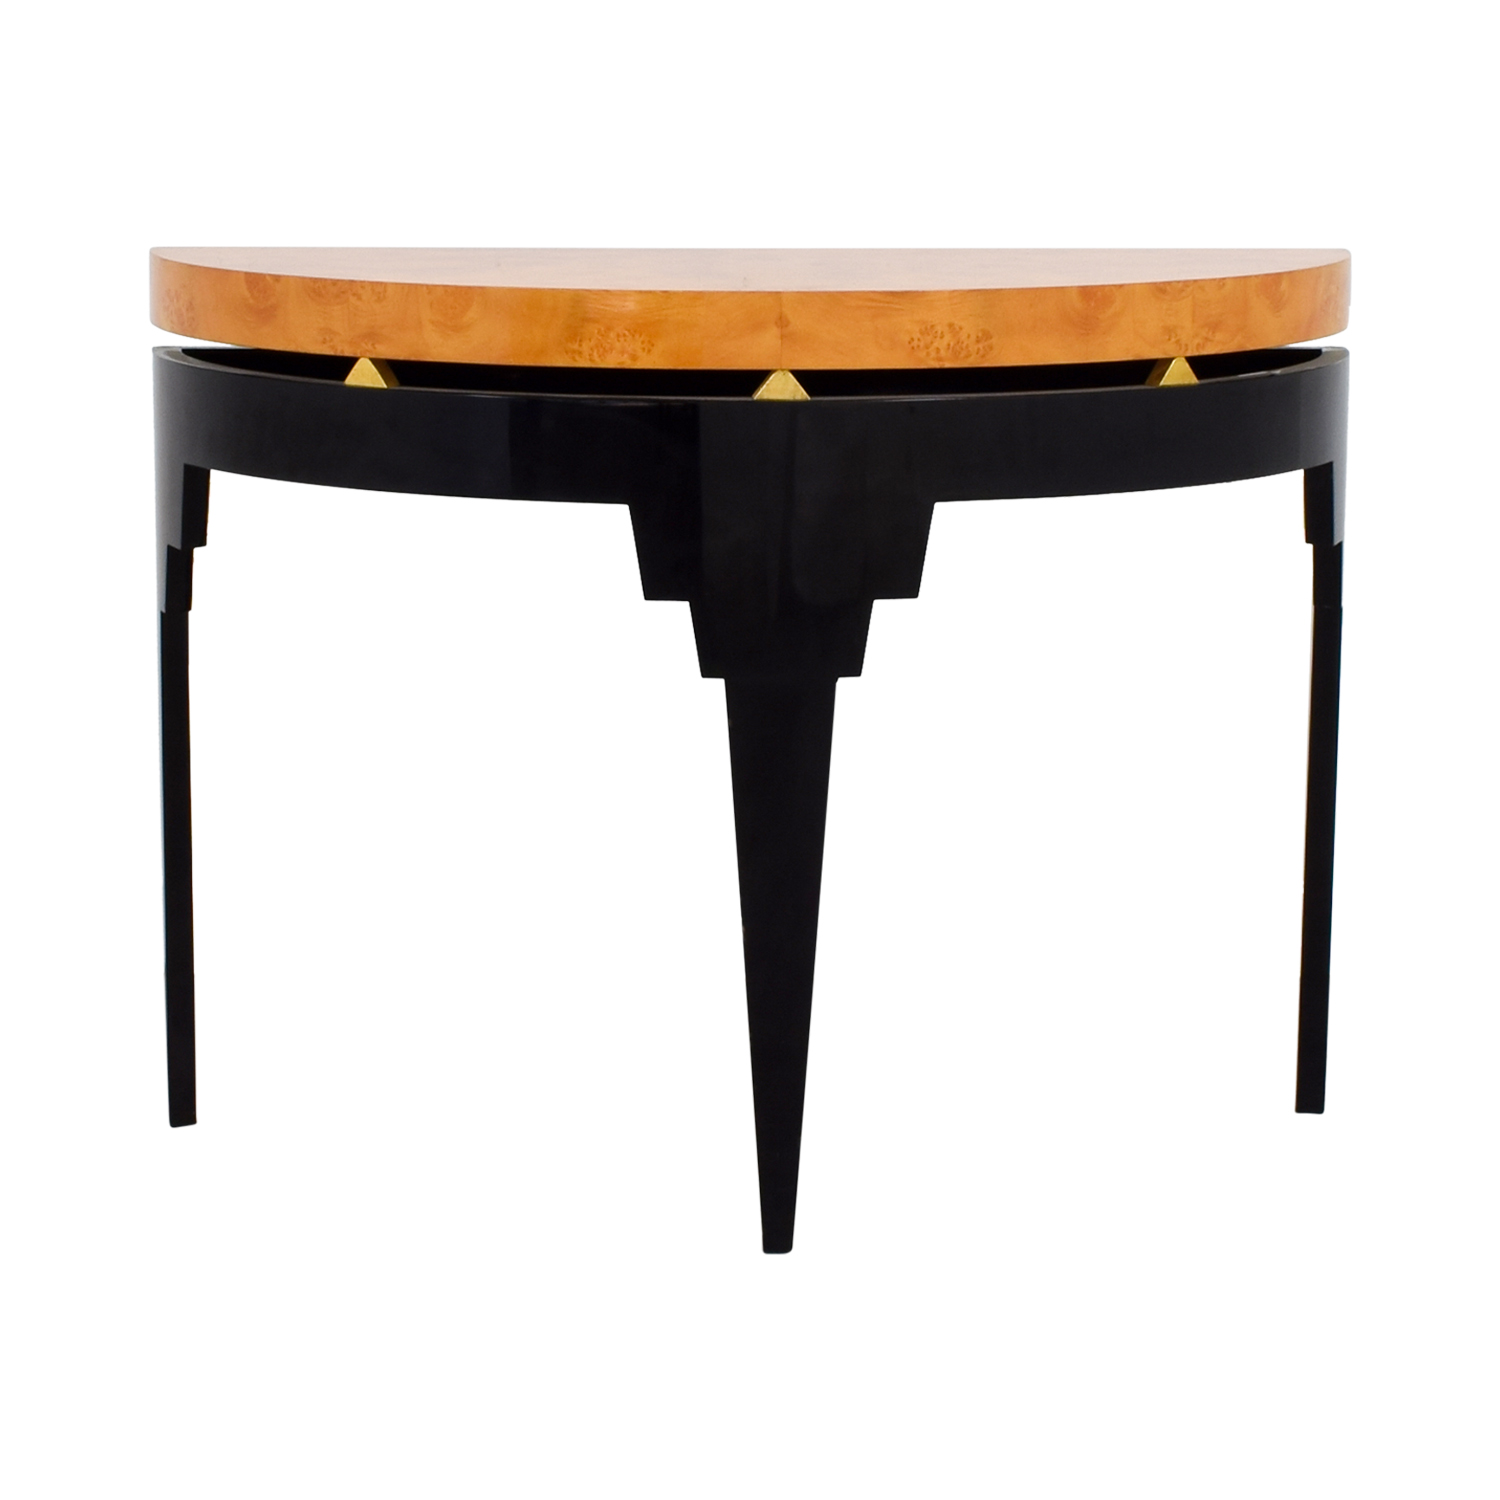 shop Furniture Masters Furniture Masters Art Deco Two Tone Accent Table online